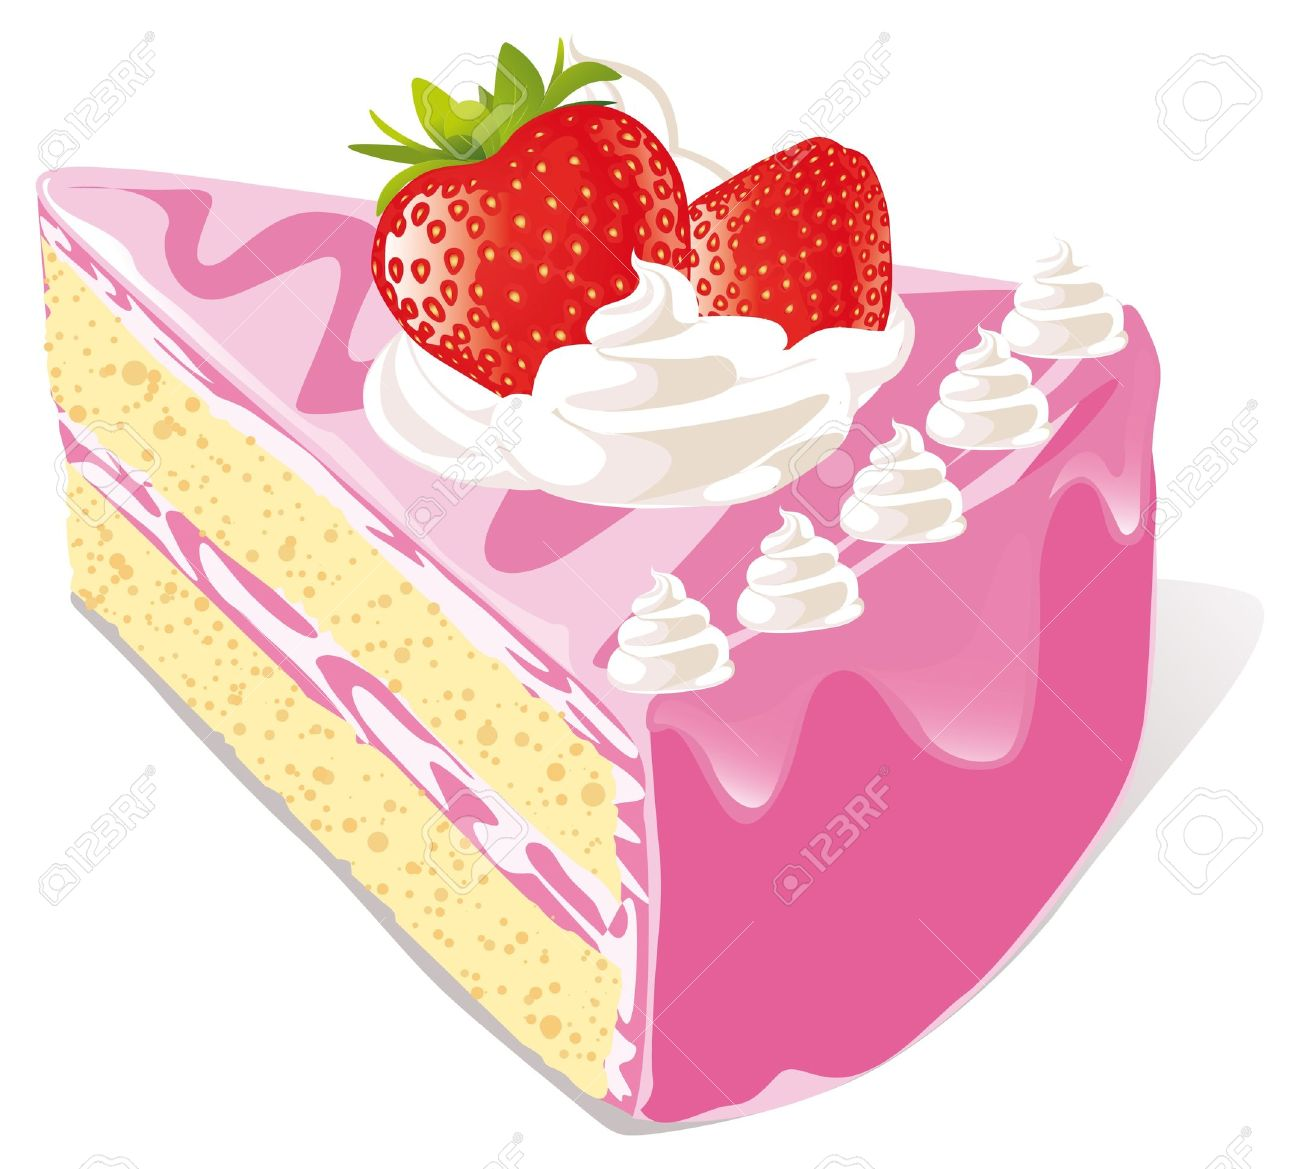 piece of cake: strawberry cake